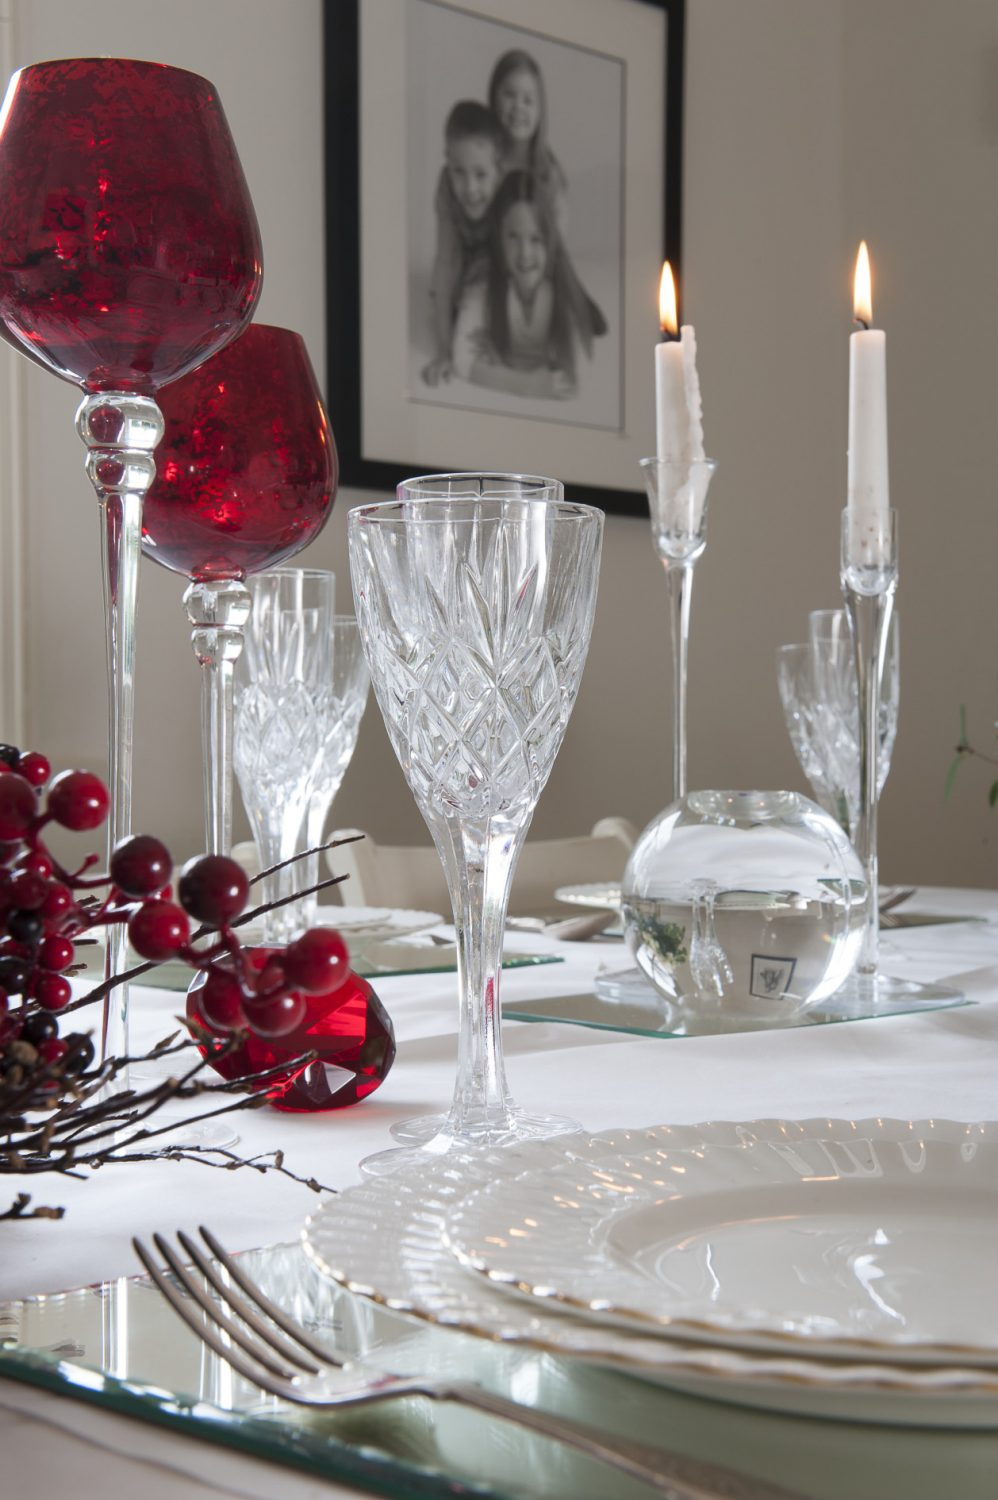 Steph and her friend Nicky have dressed the dining table with cut crystal glasses and cranberry glass goblets